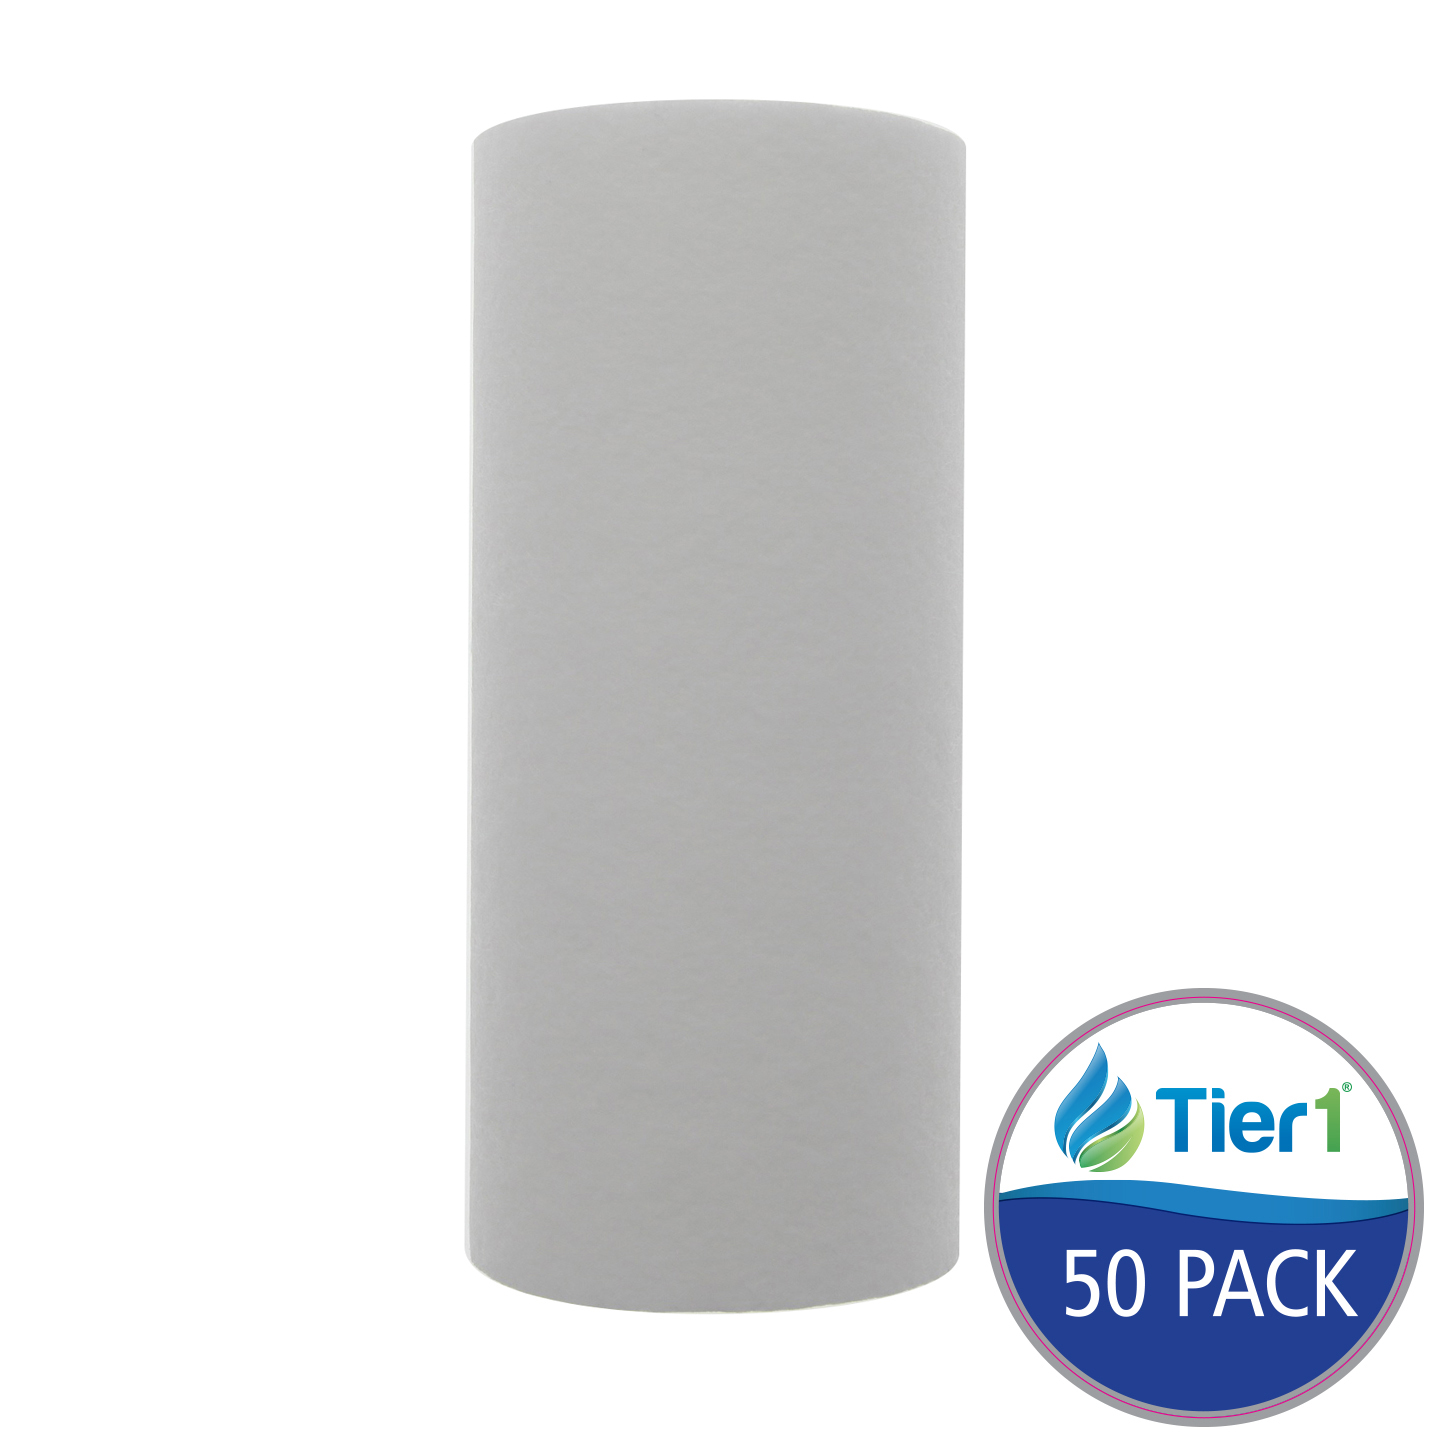 10 X 4.5 Spun Wound Polypropylene Replacement Filter by Tier1 (10 micron) (50-Pack) TIER1_P10_10BB_50_PACK